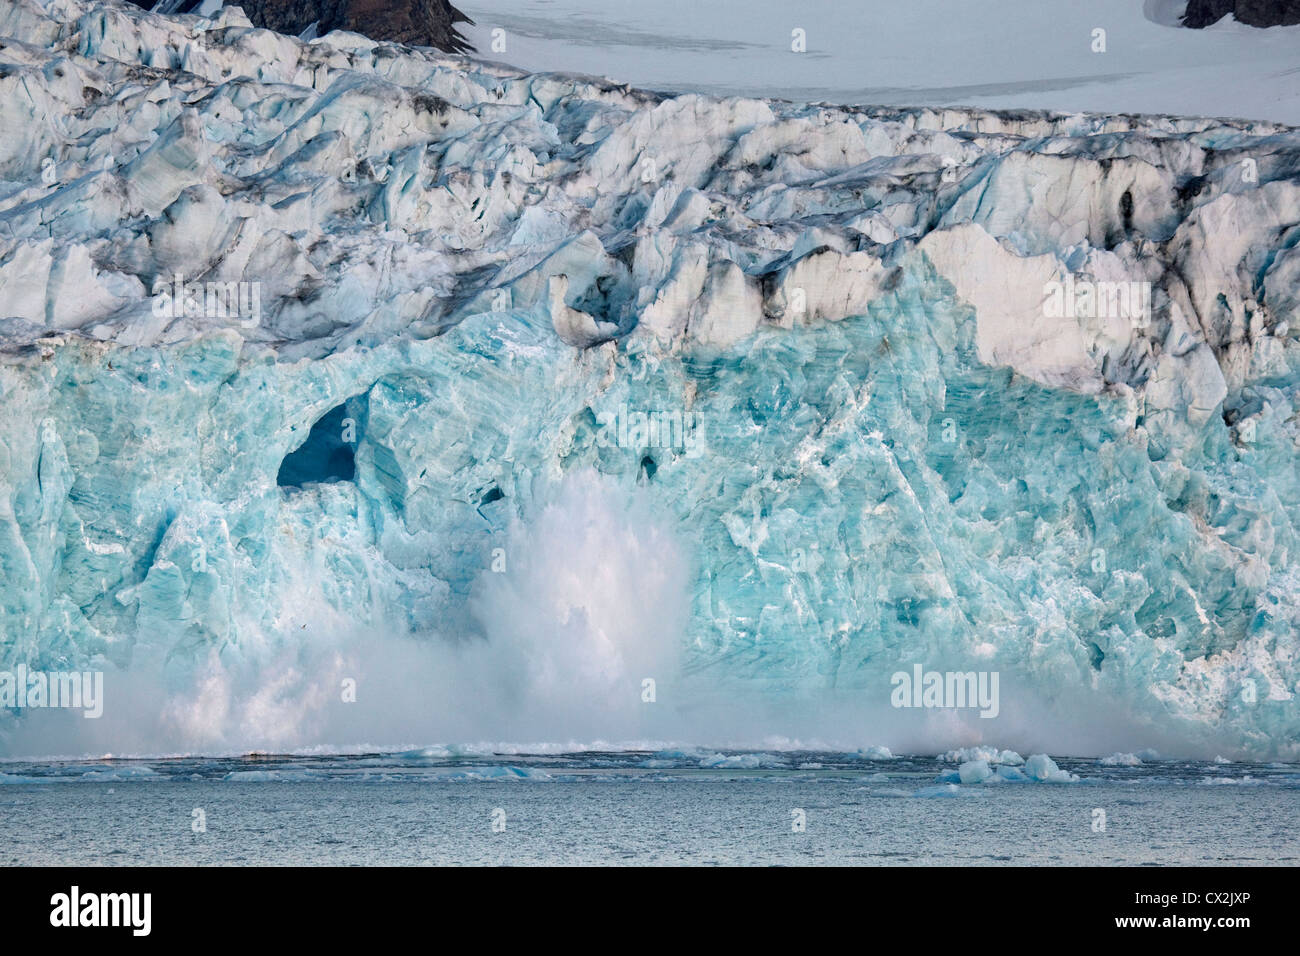 Large chunk of ice breaking off glacier and tumbling with big splash in the Magdalenefjord on Svalbard, Spitsbergen, - Stock Image